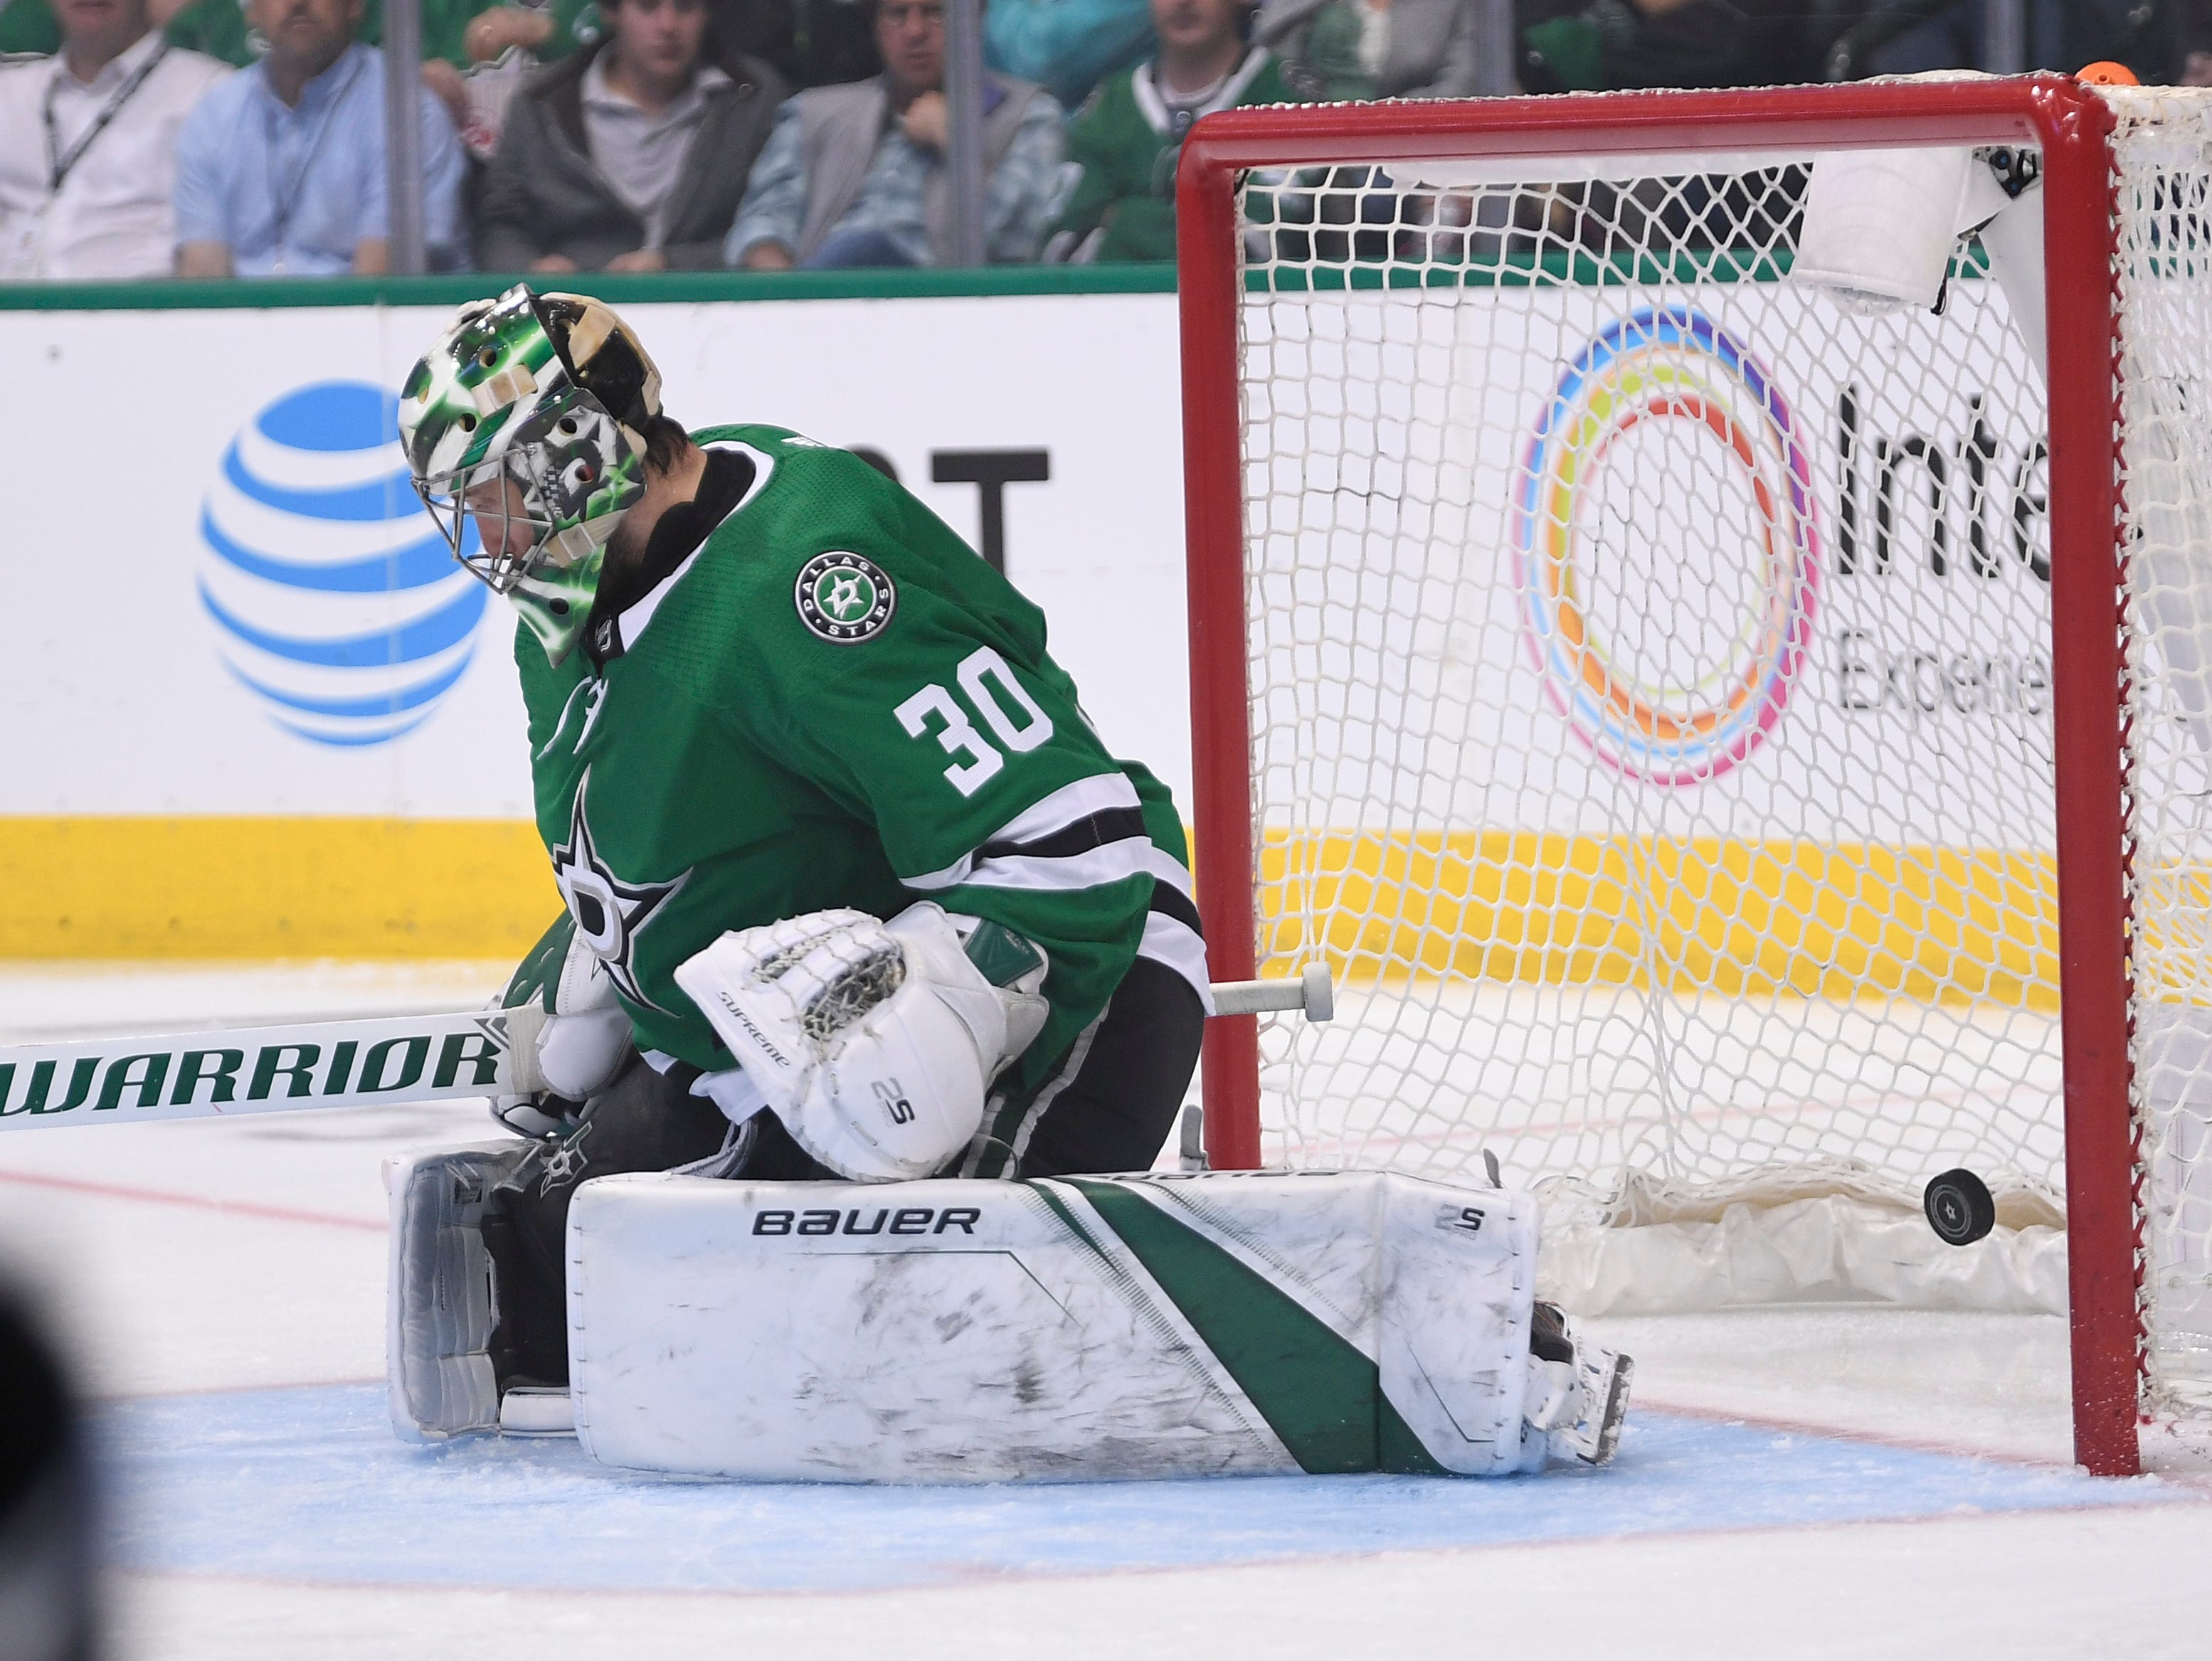 The goal by Nashville Predators center Rocco Grimaldi (23) gets by Dallas Stars goaltender Ben Bishop (30) during the second period of the divisional semifinal game at the American Airlines Center in Dallas, Texas., Monday, April 15, 2019.